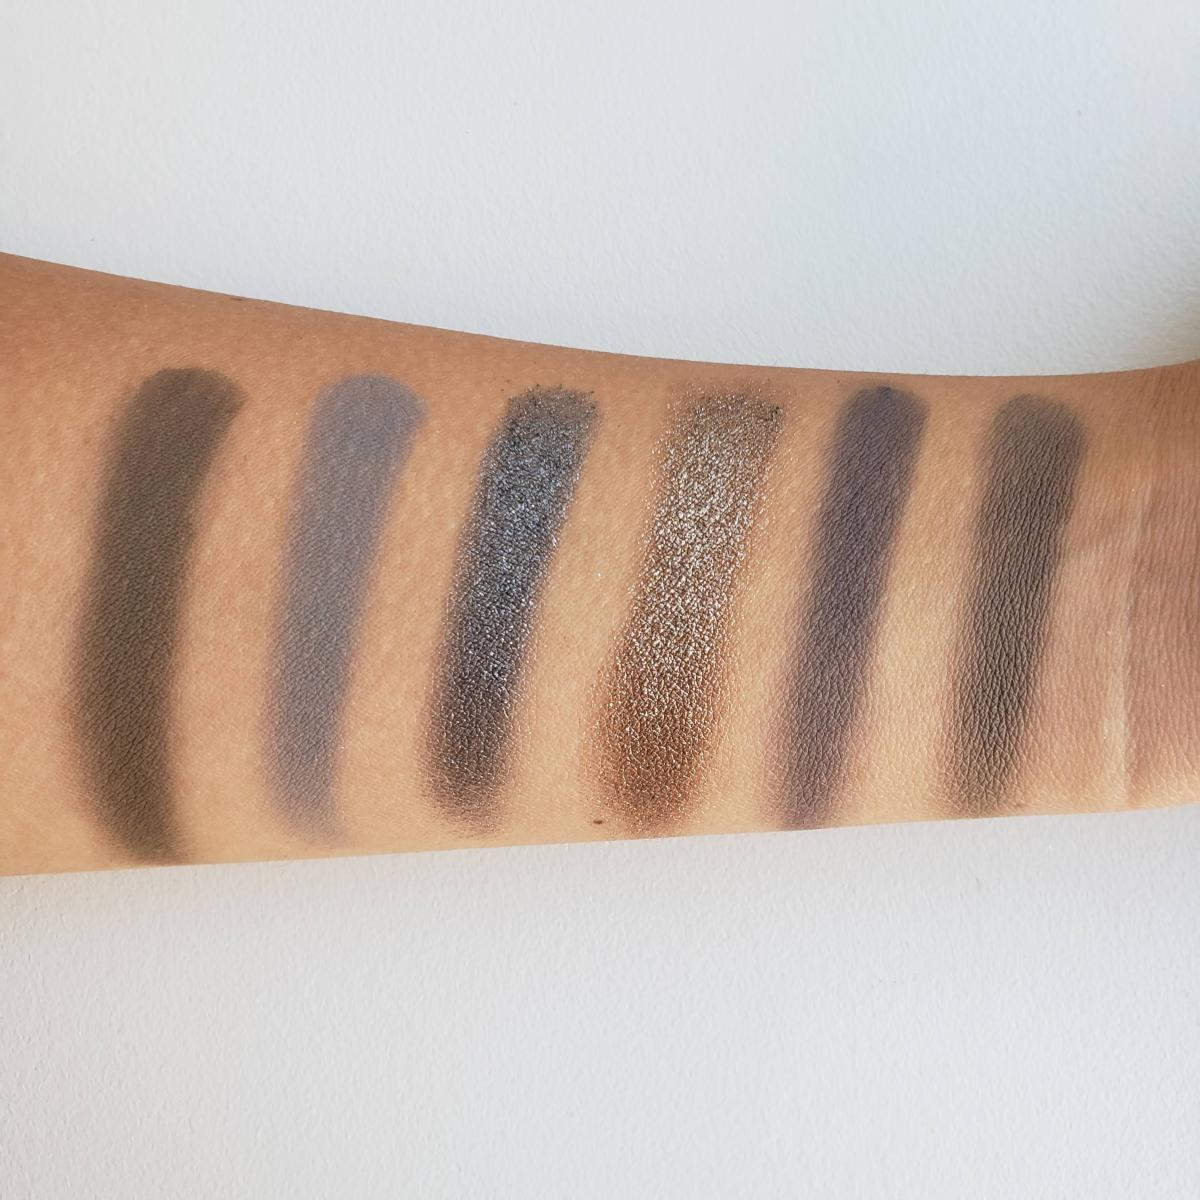 Jeffree Star Cosmetics Cremated Eyeshadow Palette Review Swatches 2